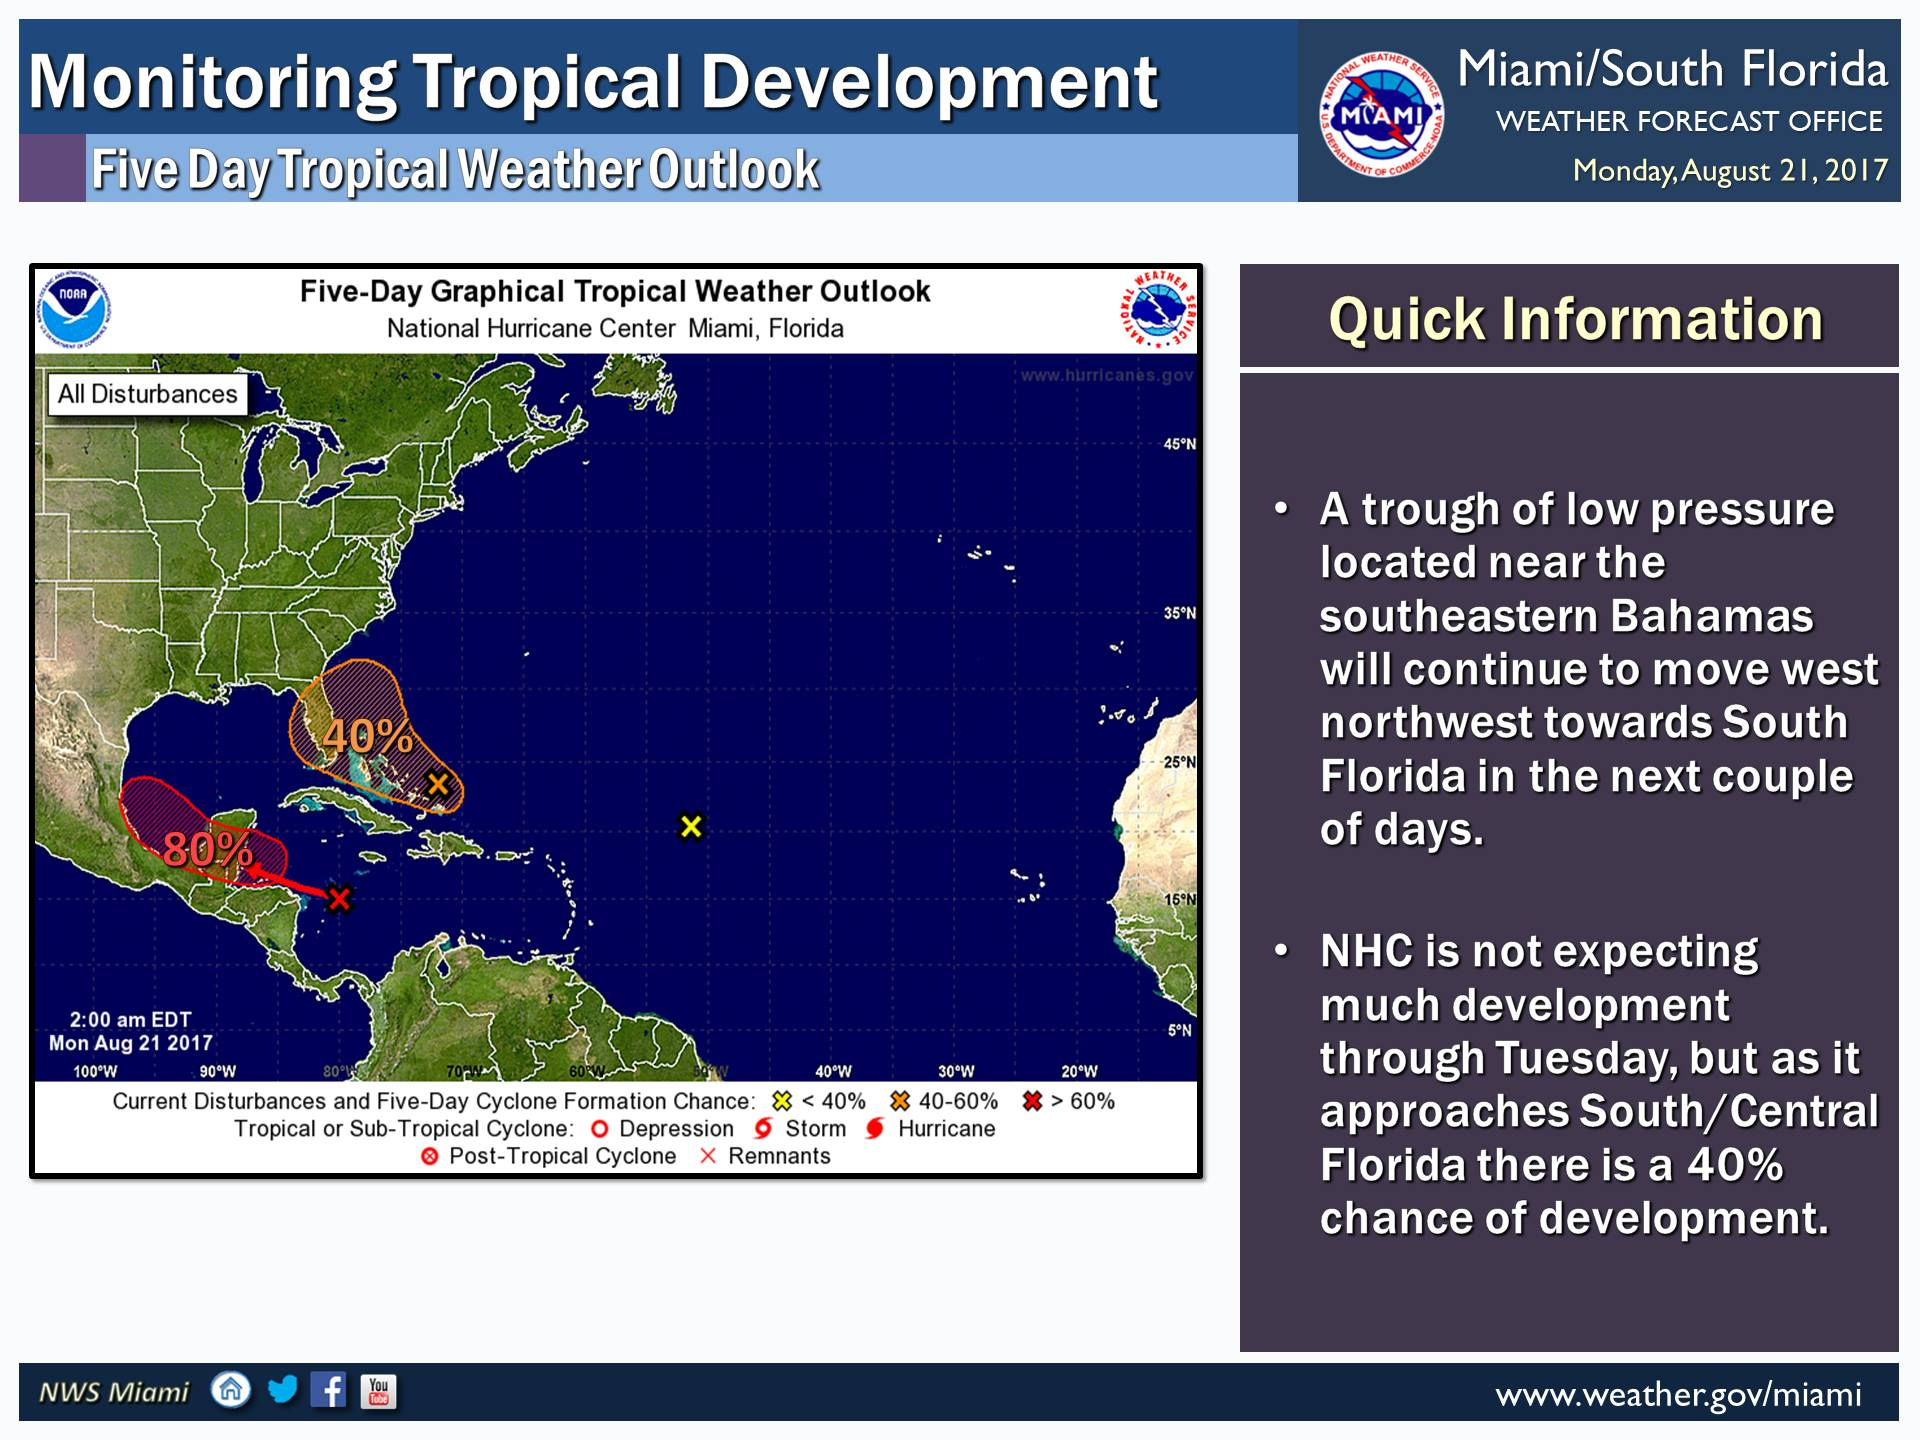 Another tropical disturbance is developing in the Atlantic